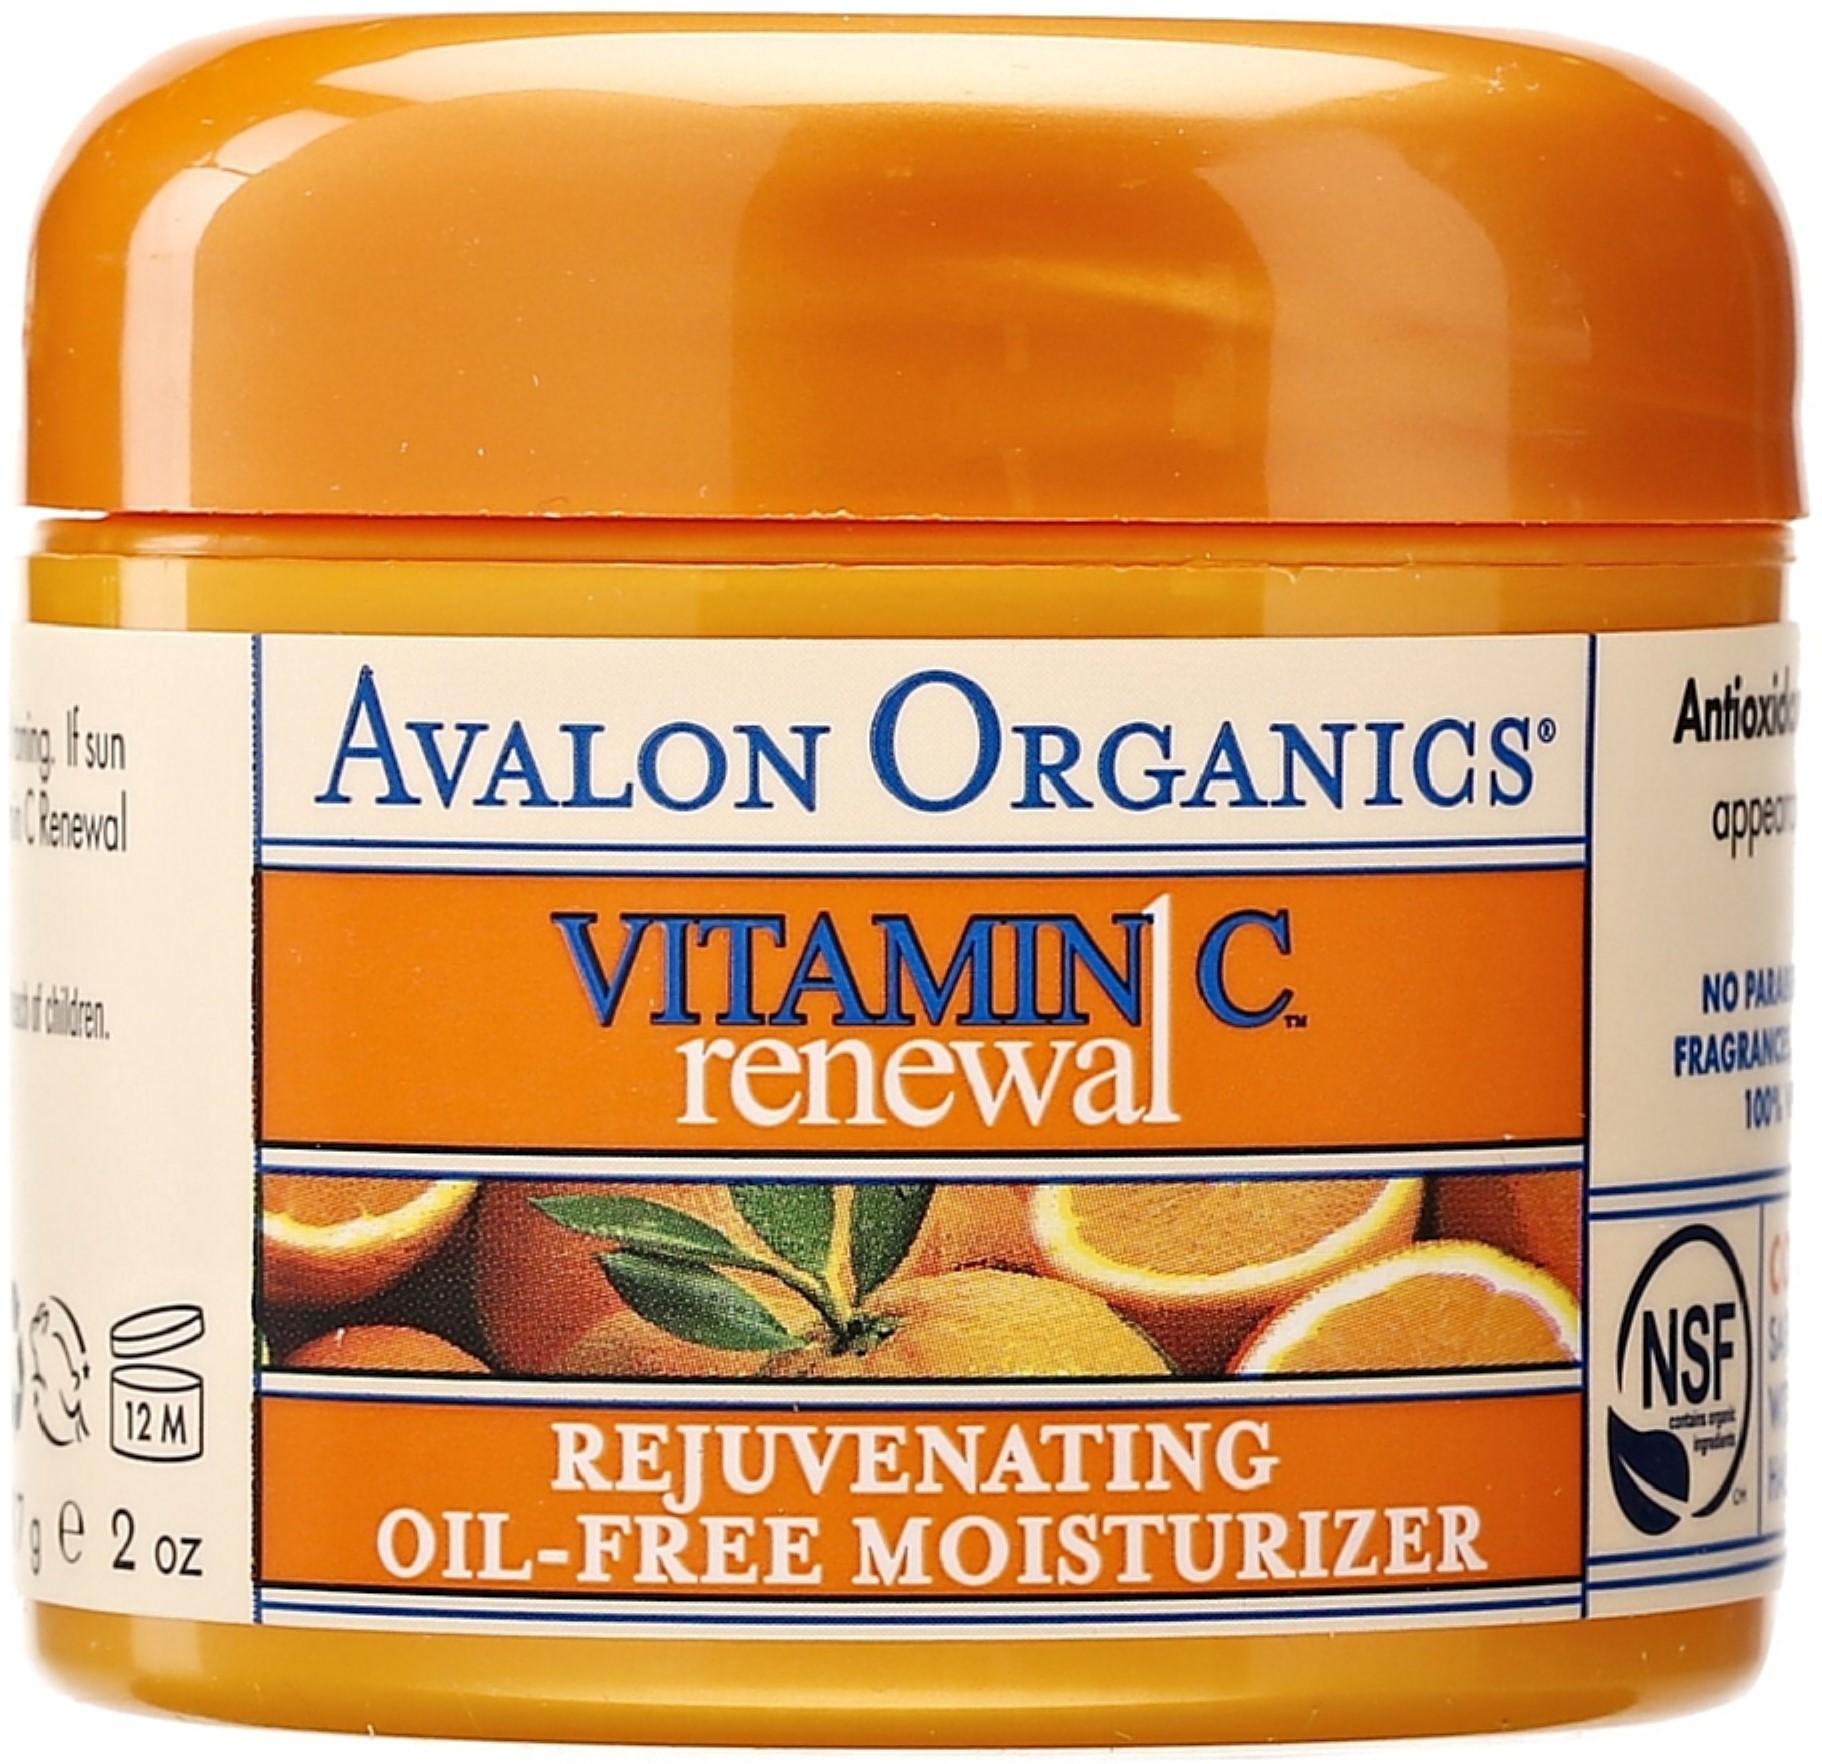 Avalon Organics Vitamin C Renewal Rejuvenating Oil-Free Moisturizer 2 oz (Pack of 2)